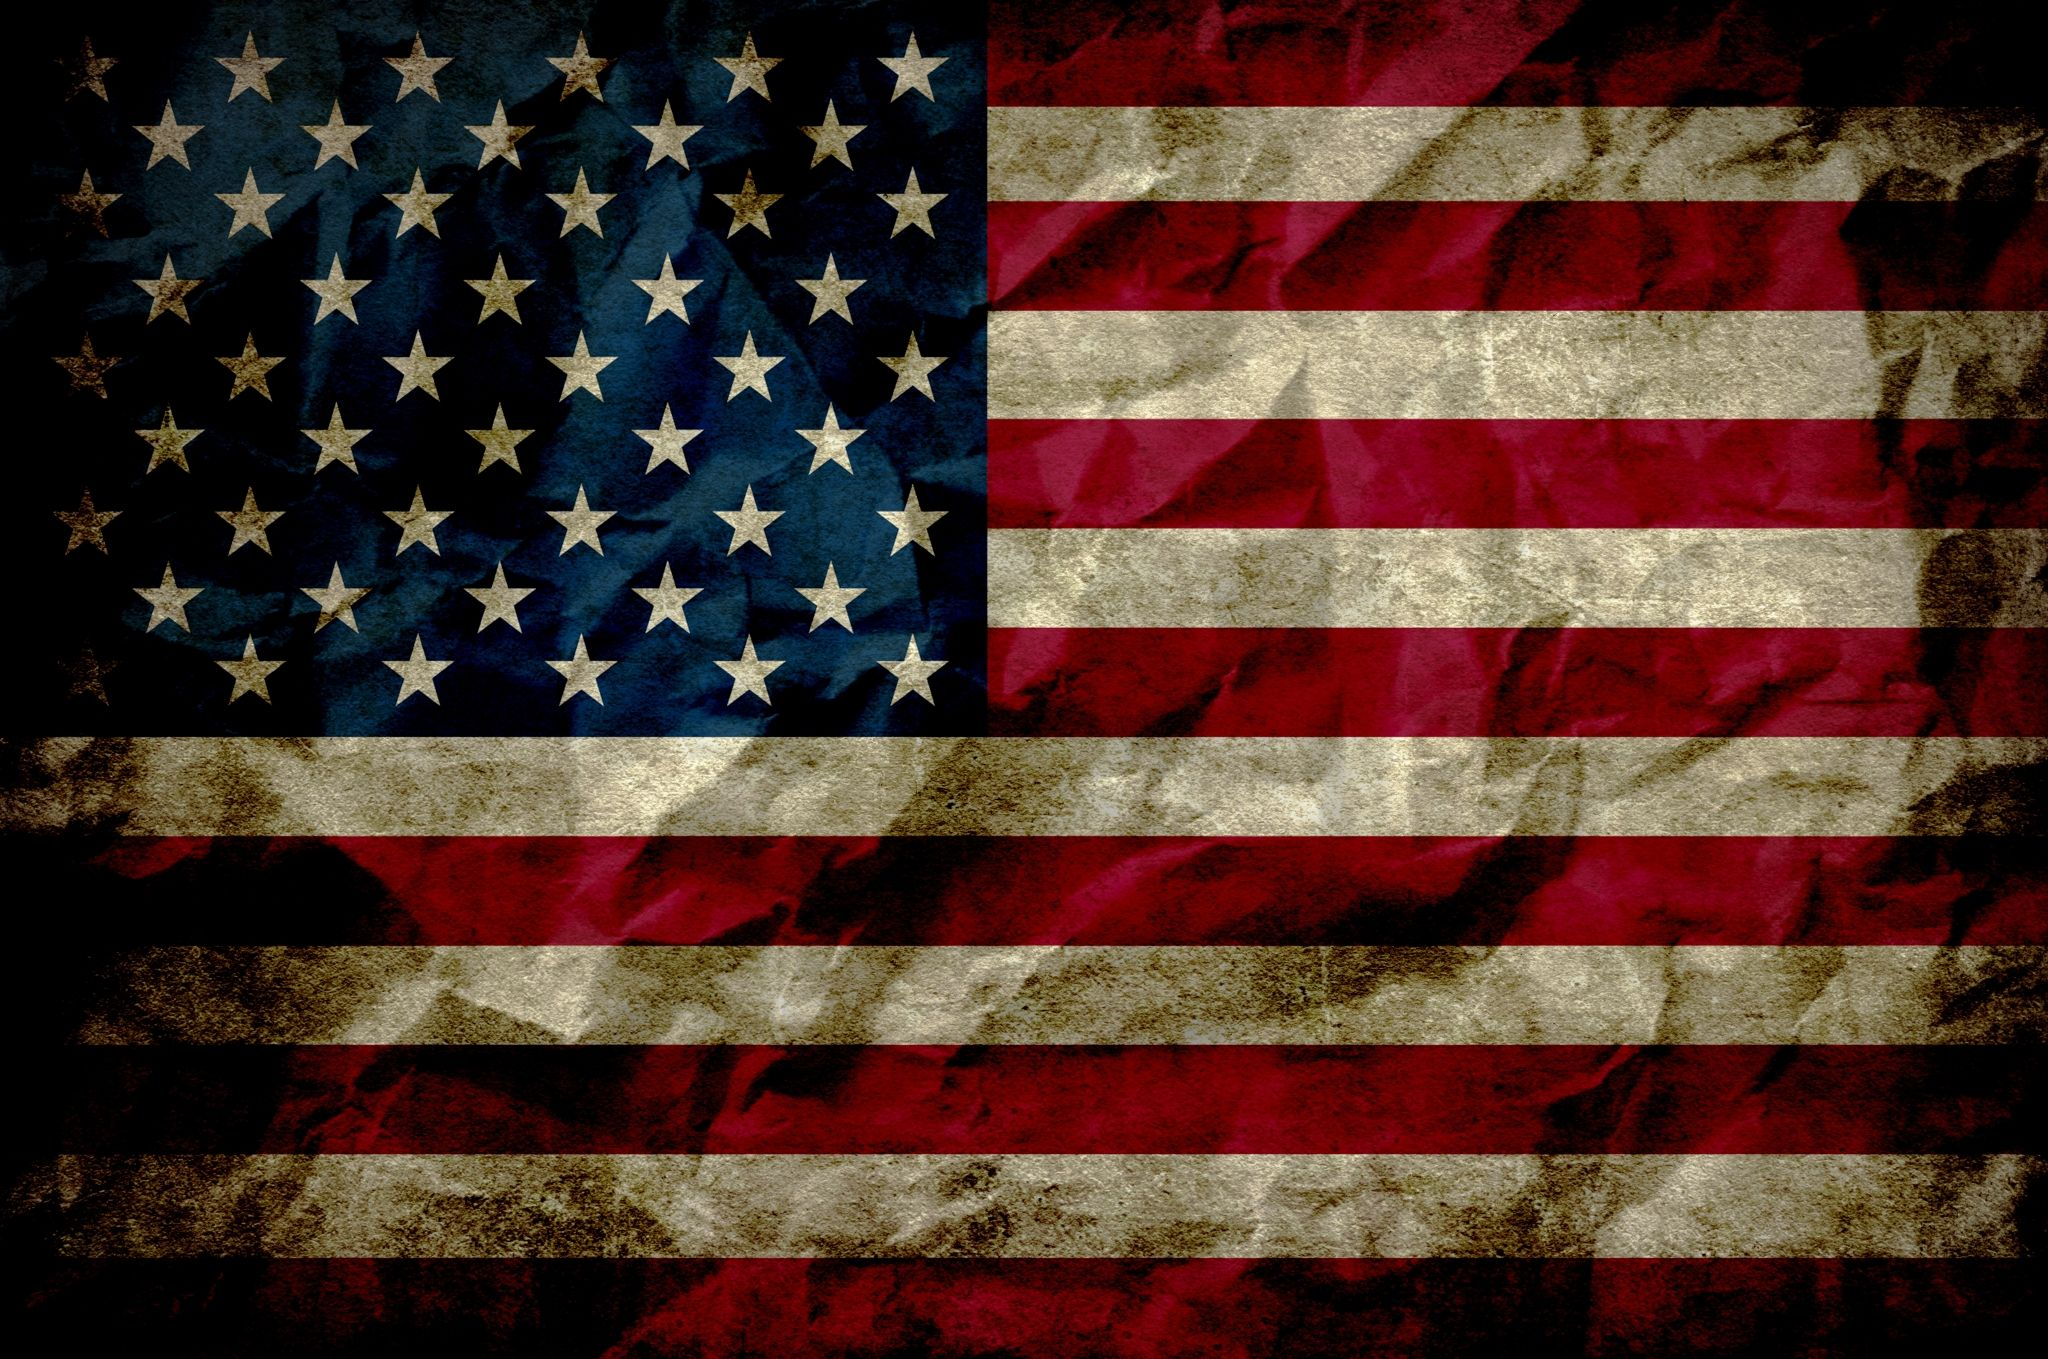 2048x1359 American Flag Wallpaper Free Desktop Wallpapers